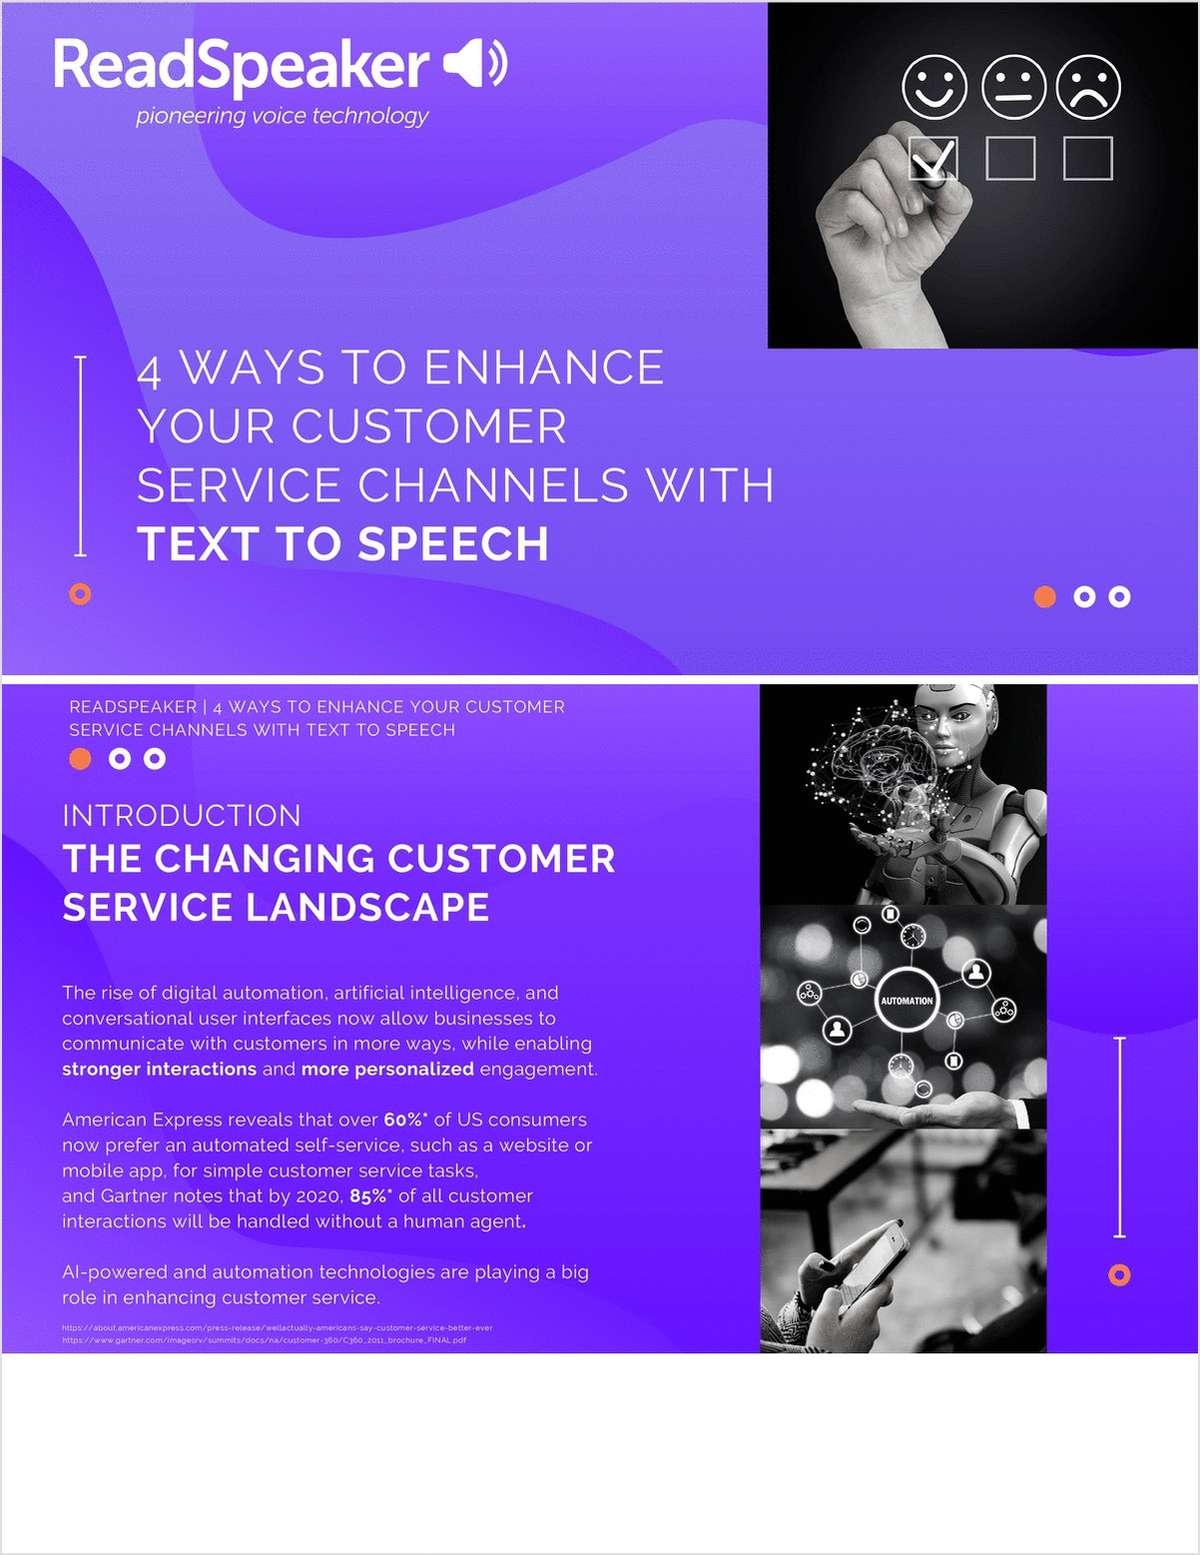 4 Ways to Enhance Your Customer Service Channels with Text to Speech